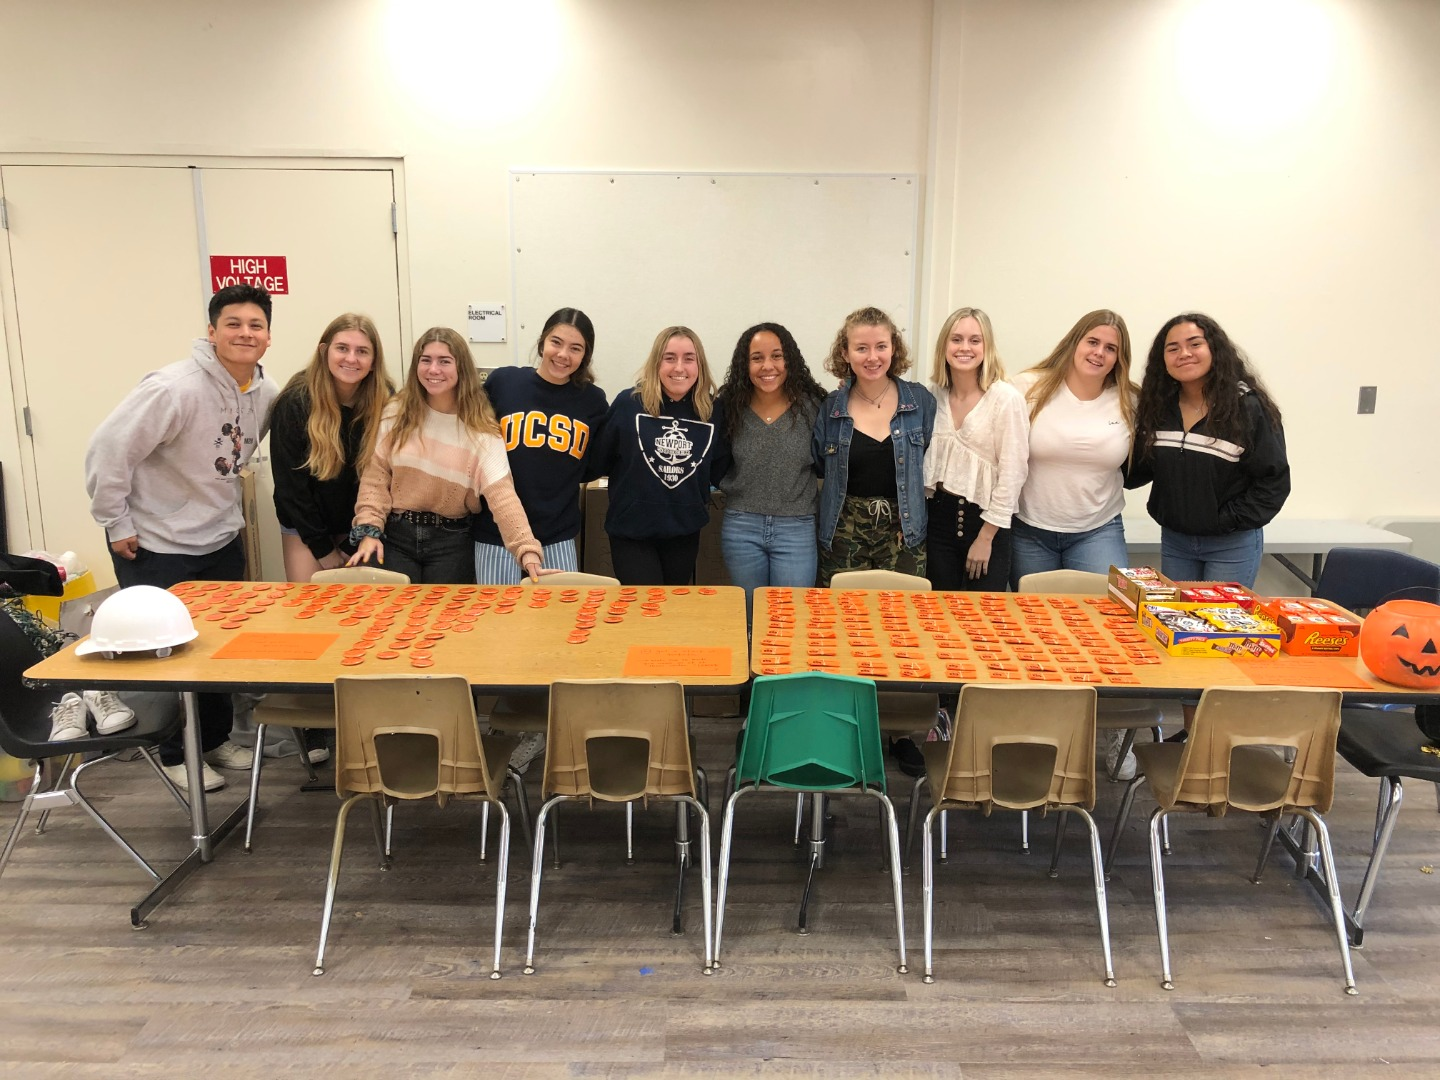 ten students standing behind a table of orange buttons